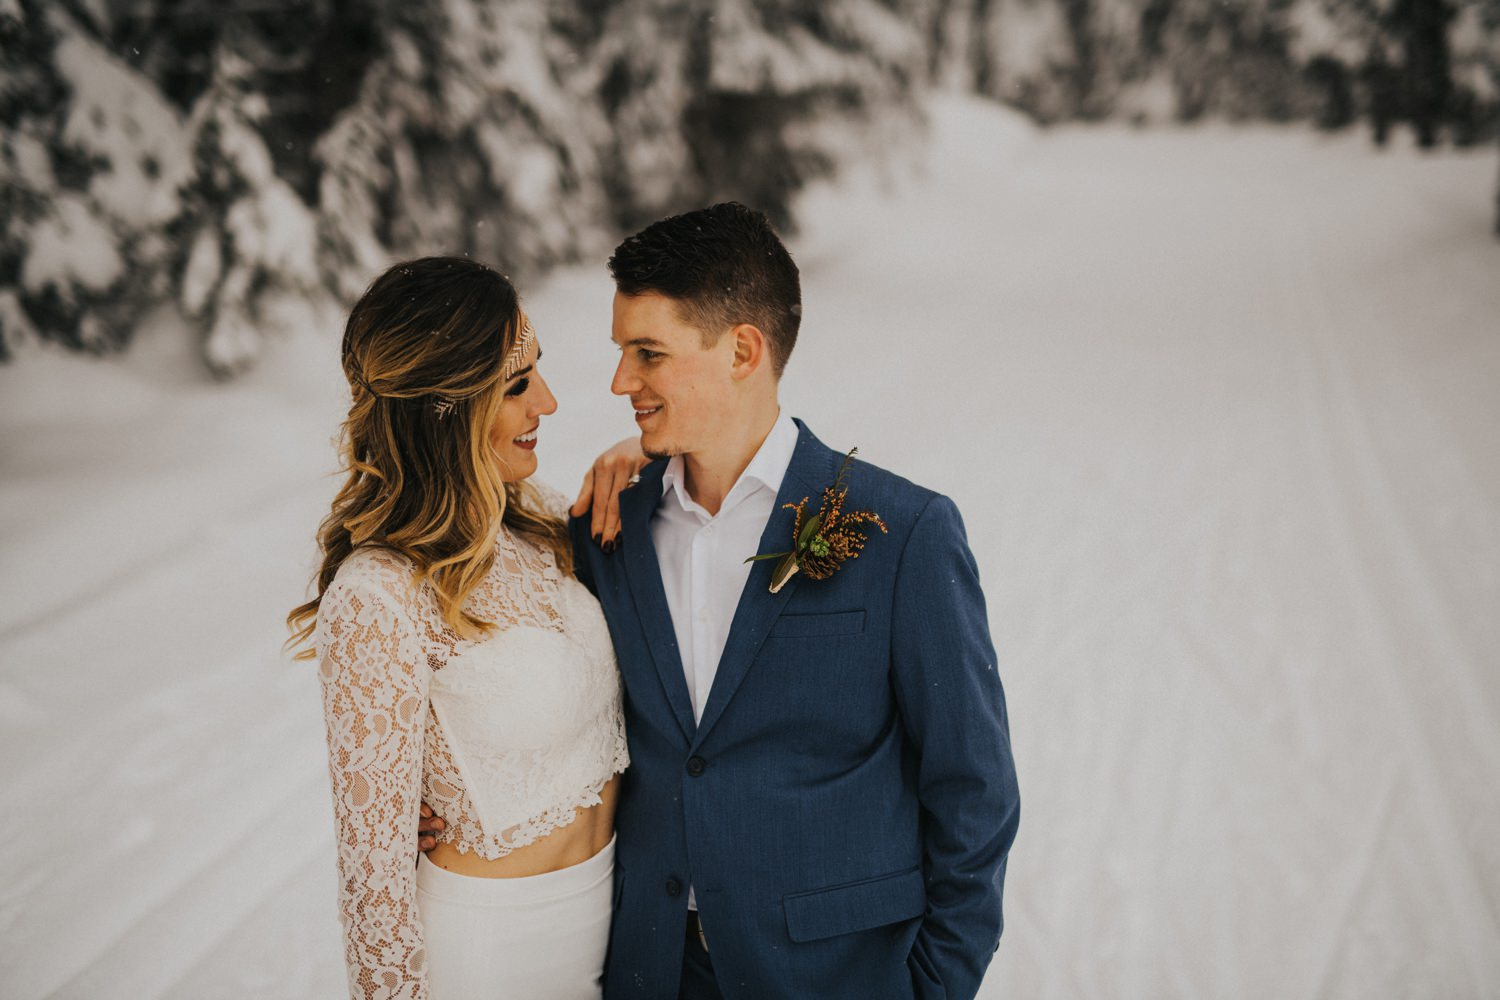 Okanagan Winter Elopement - Joelsview Photography_0015